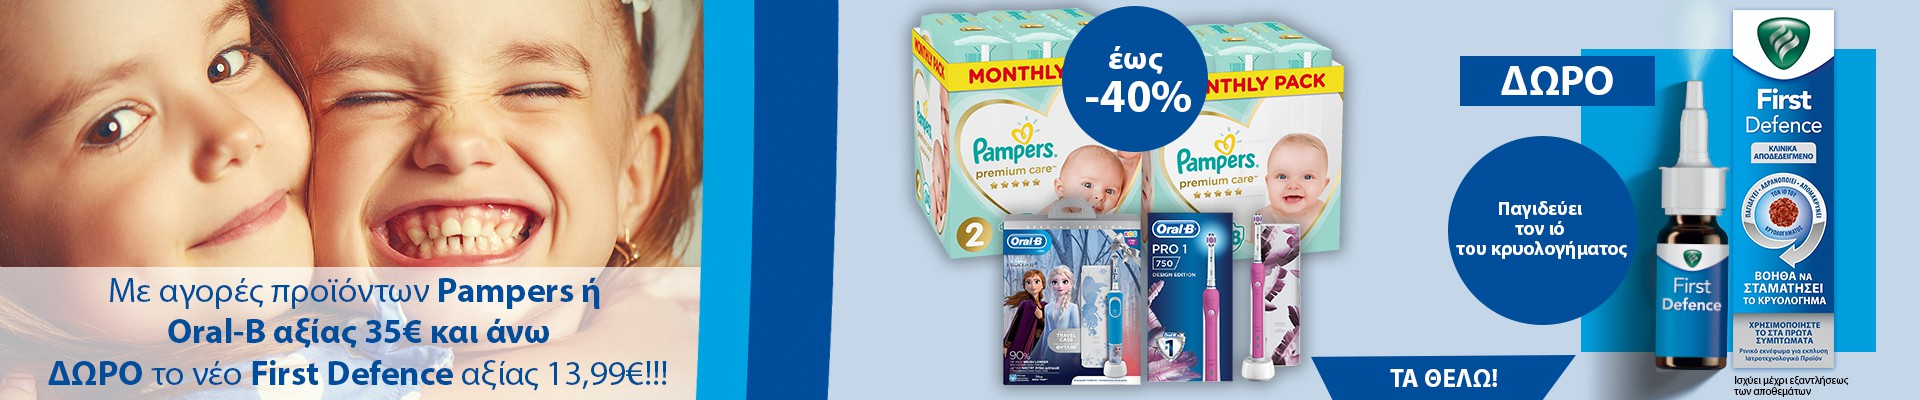 P&G Pampers Oral B Δωρο First Defence 7/1/21